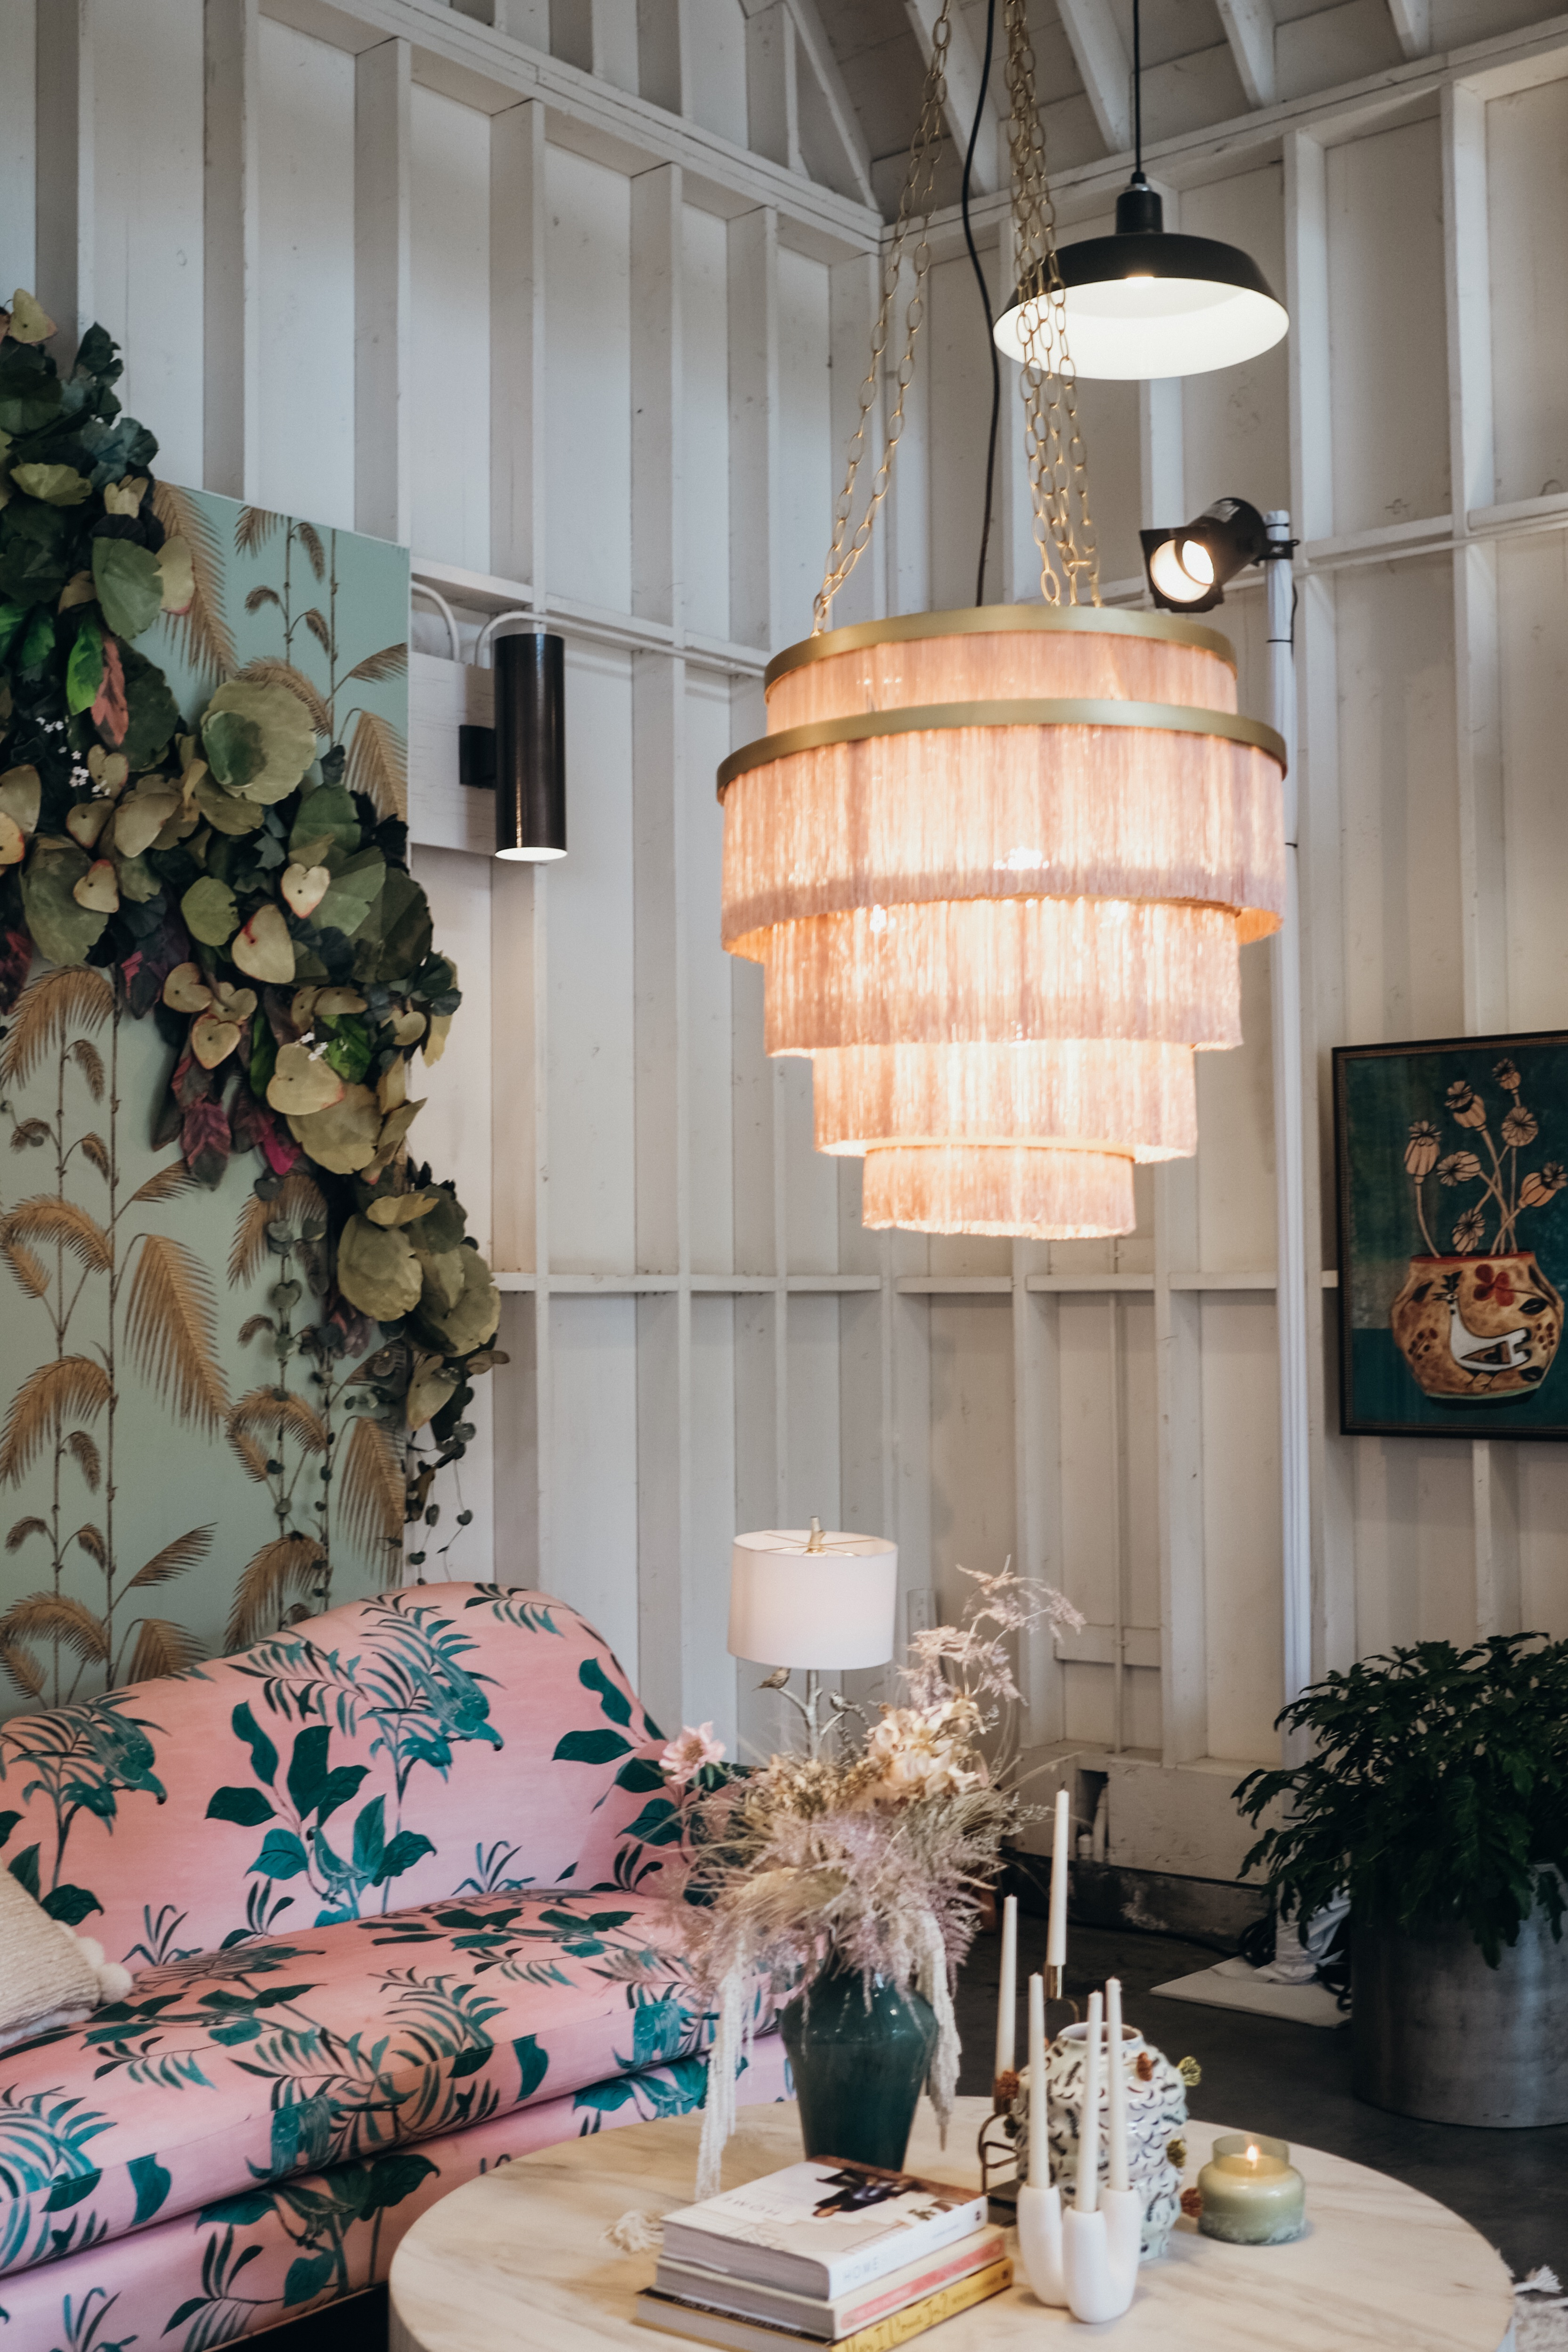 The Life Within A Day With Anthropologie